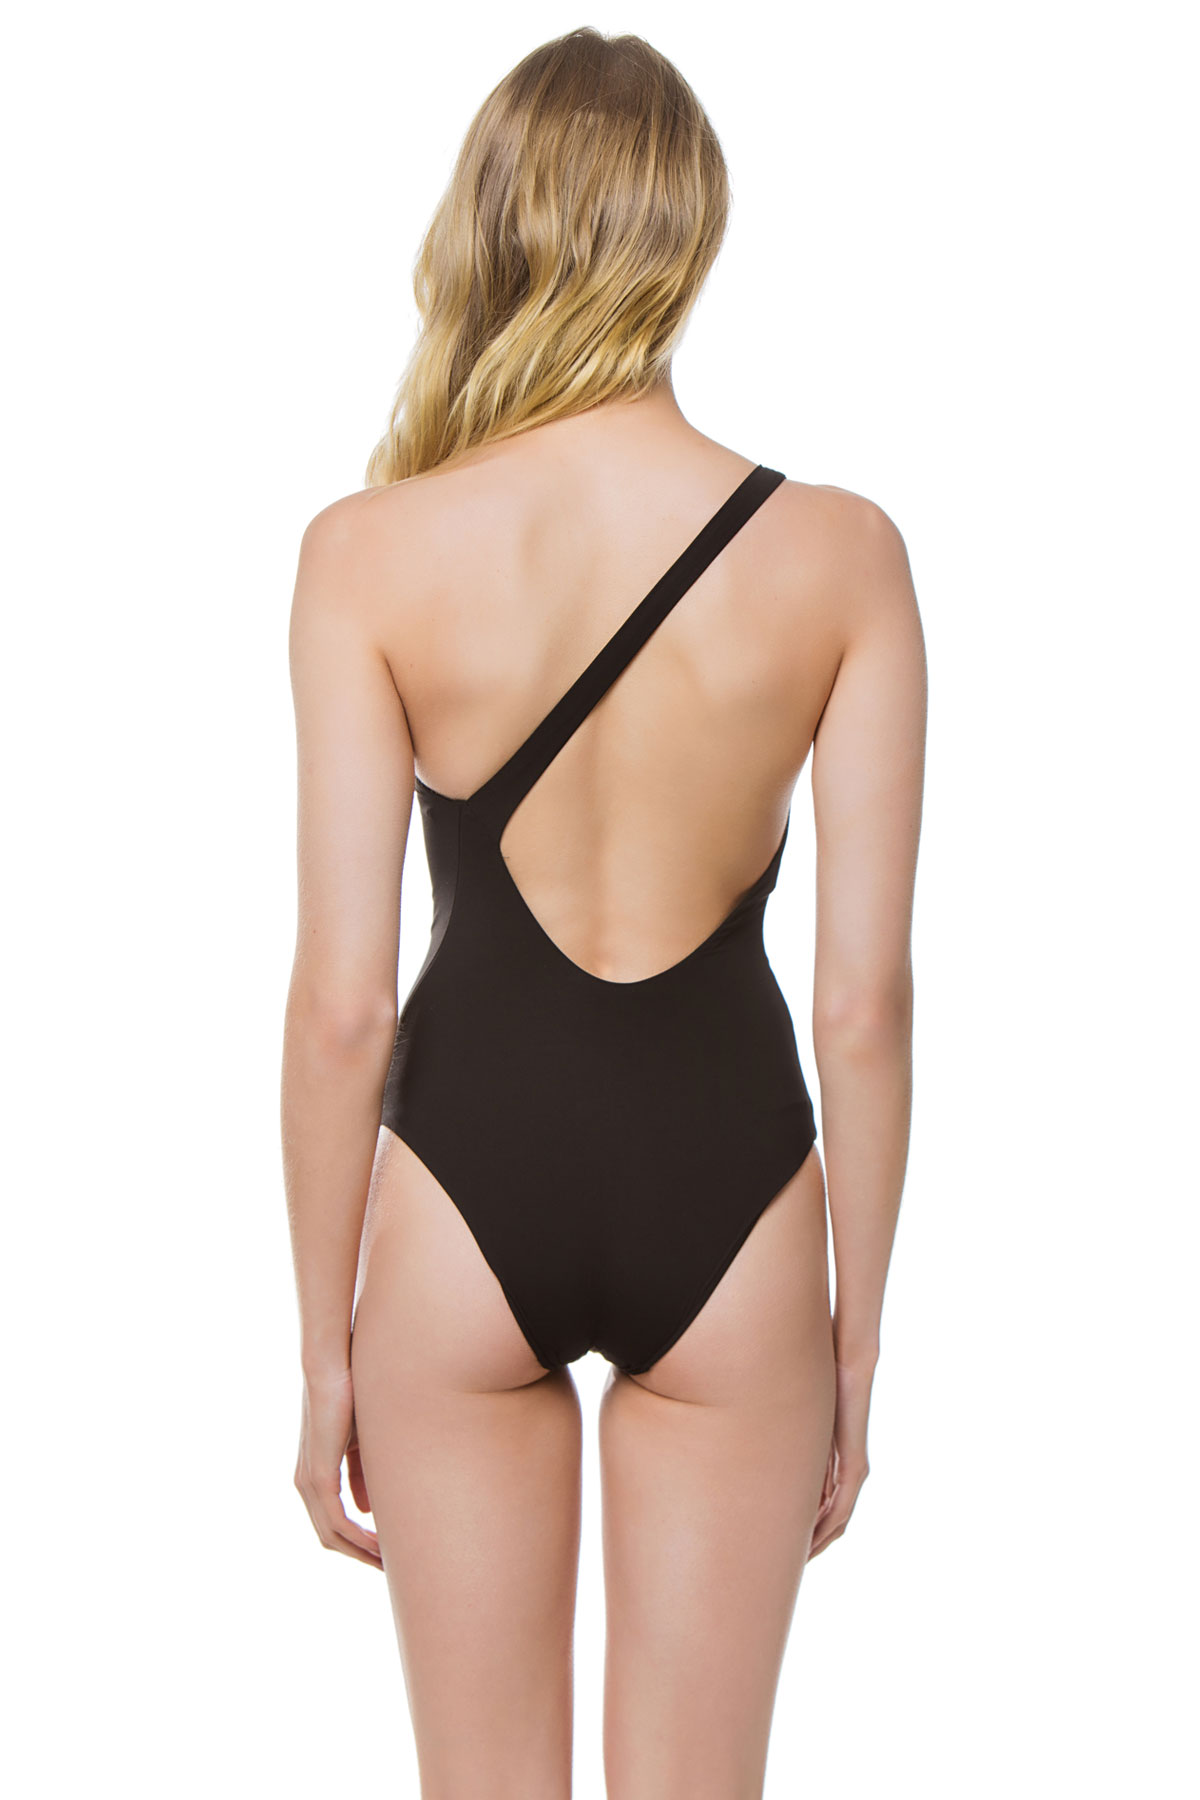 Angled Asymmetrical One Piece Swimsuit - Black 2